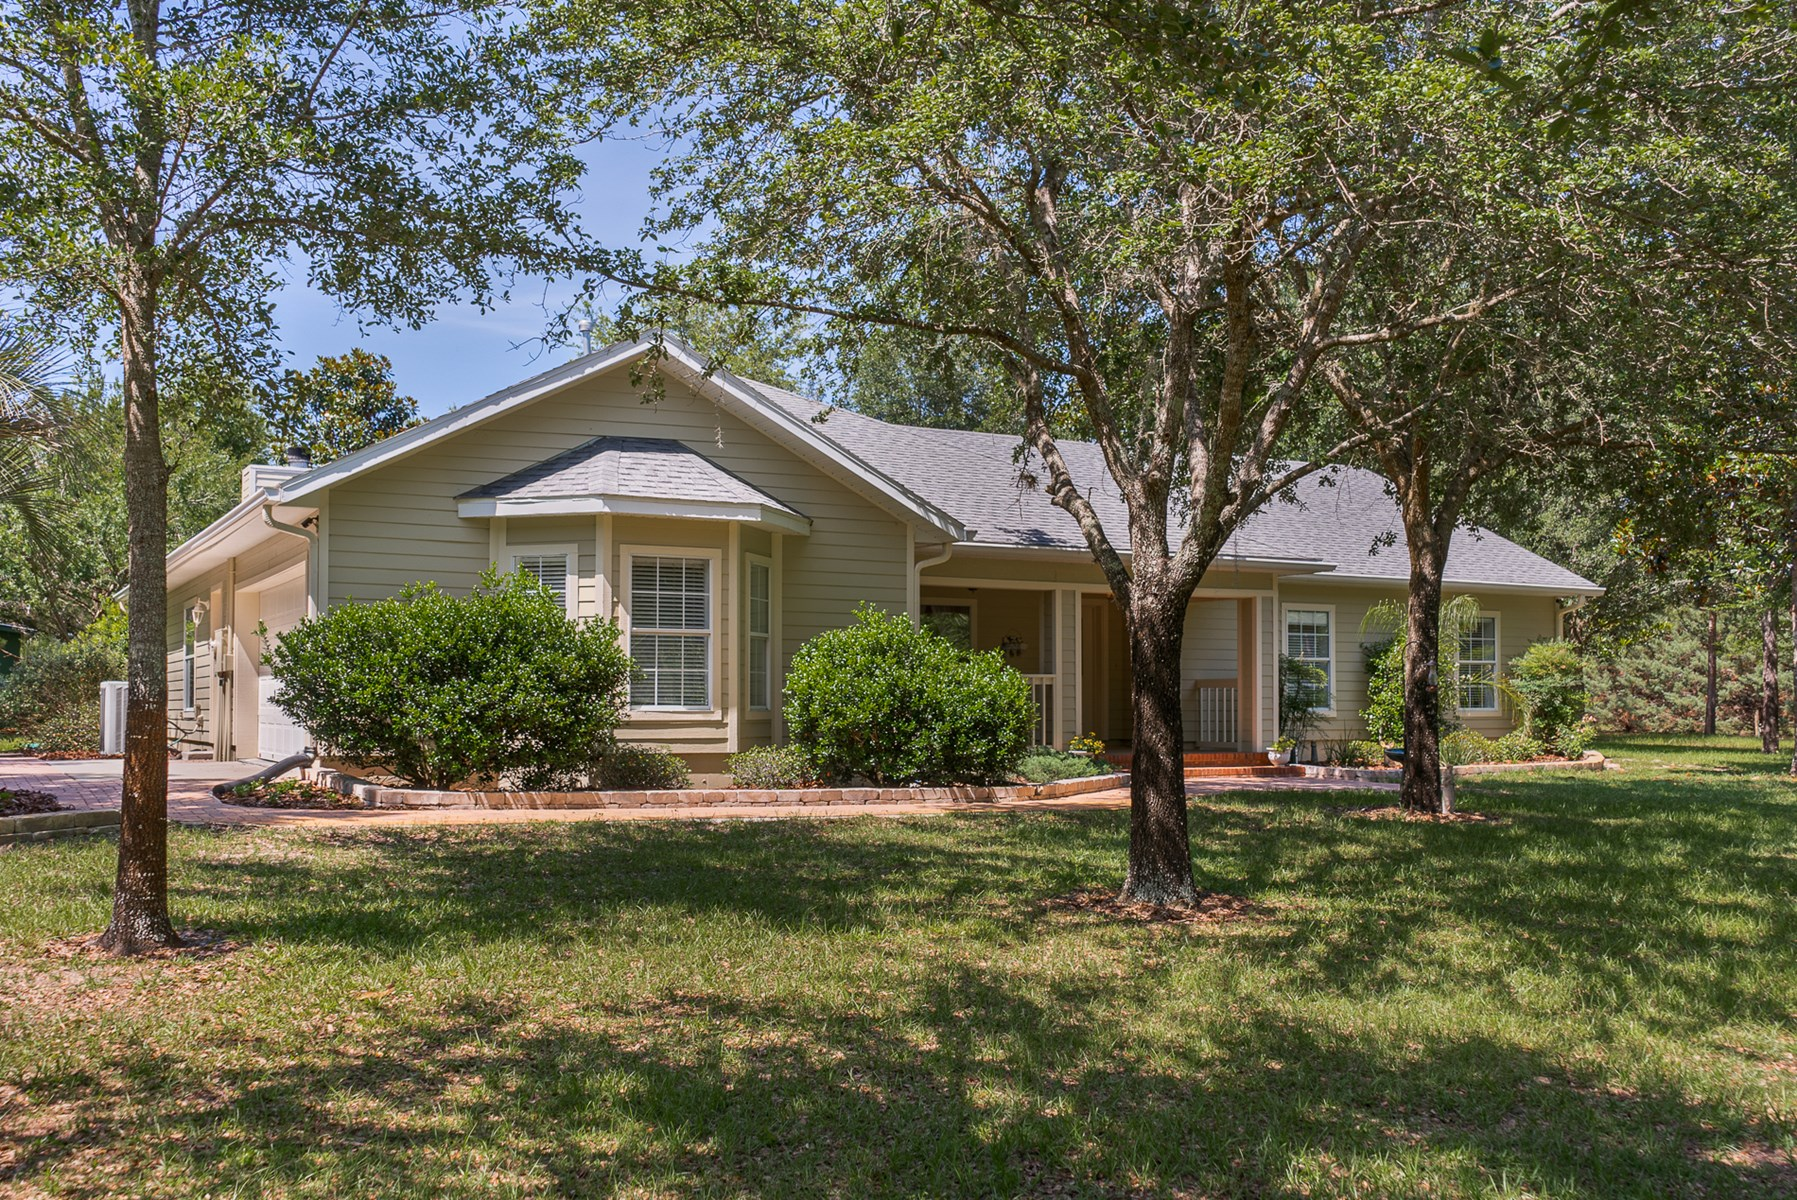 COUNTRY HOME FOR SALE ON 10 ACRES - Trenton, Gilchrist Co FL